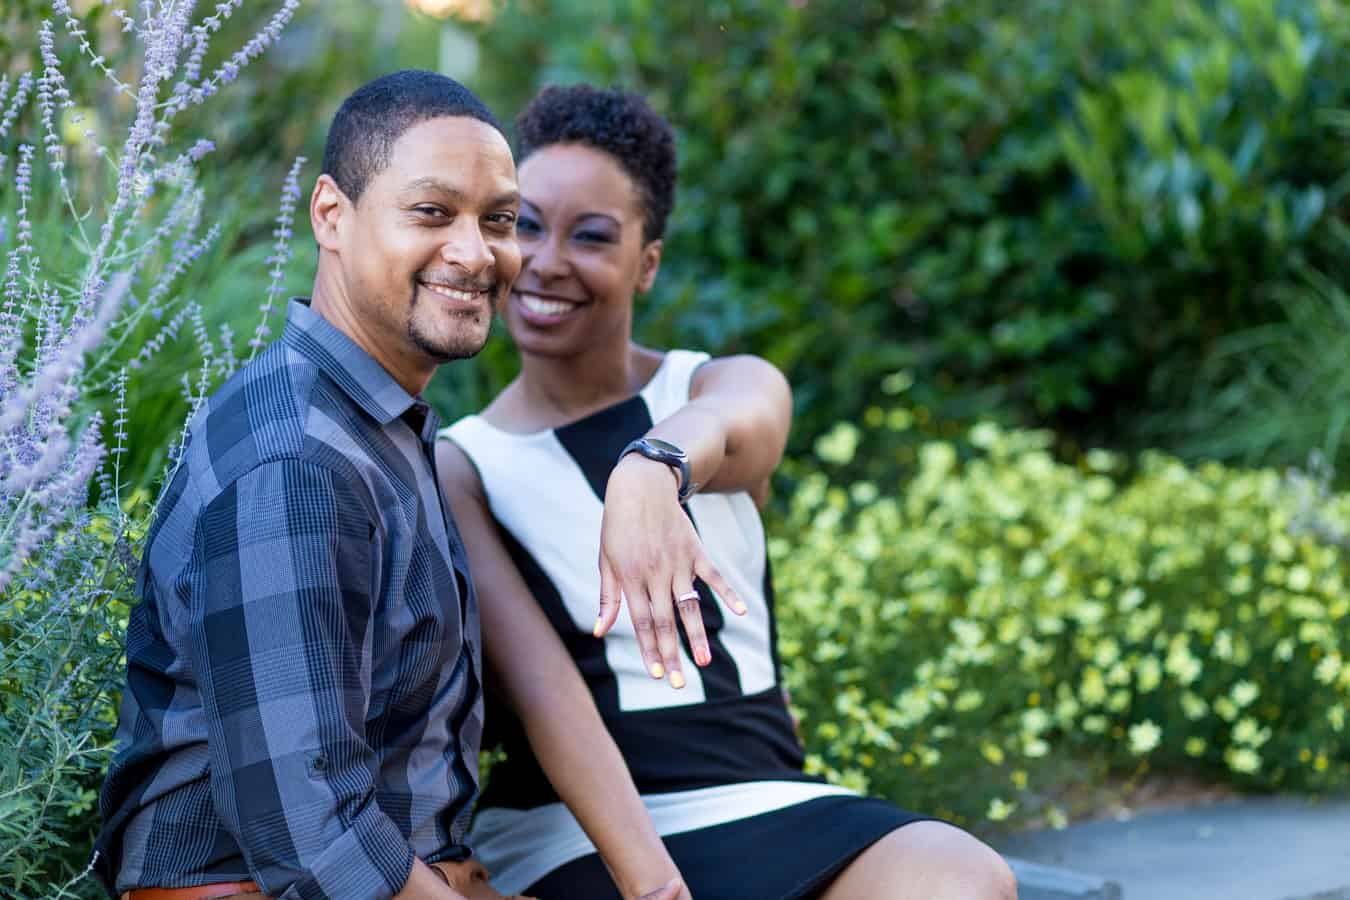 romare_bearden_park-engagement